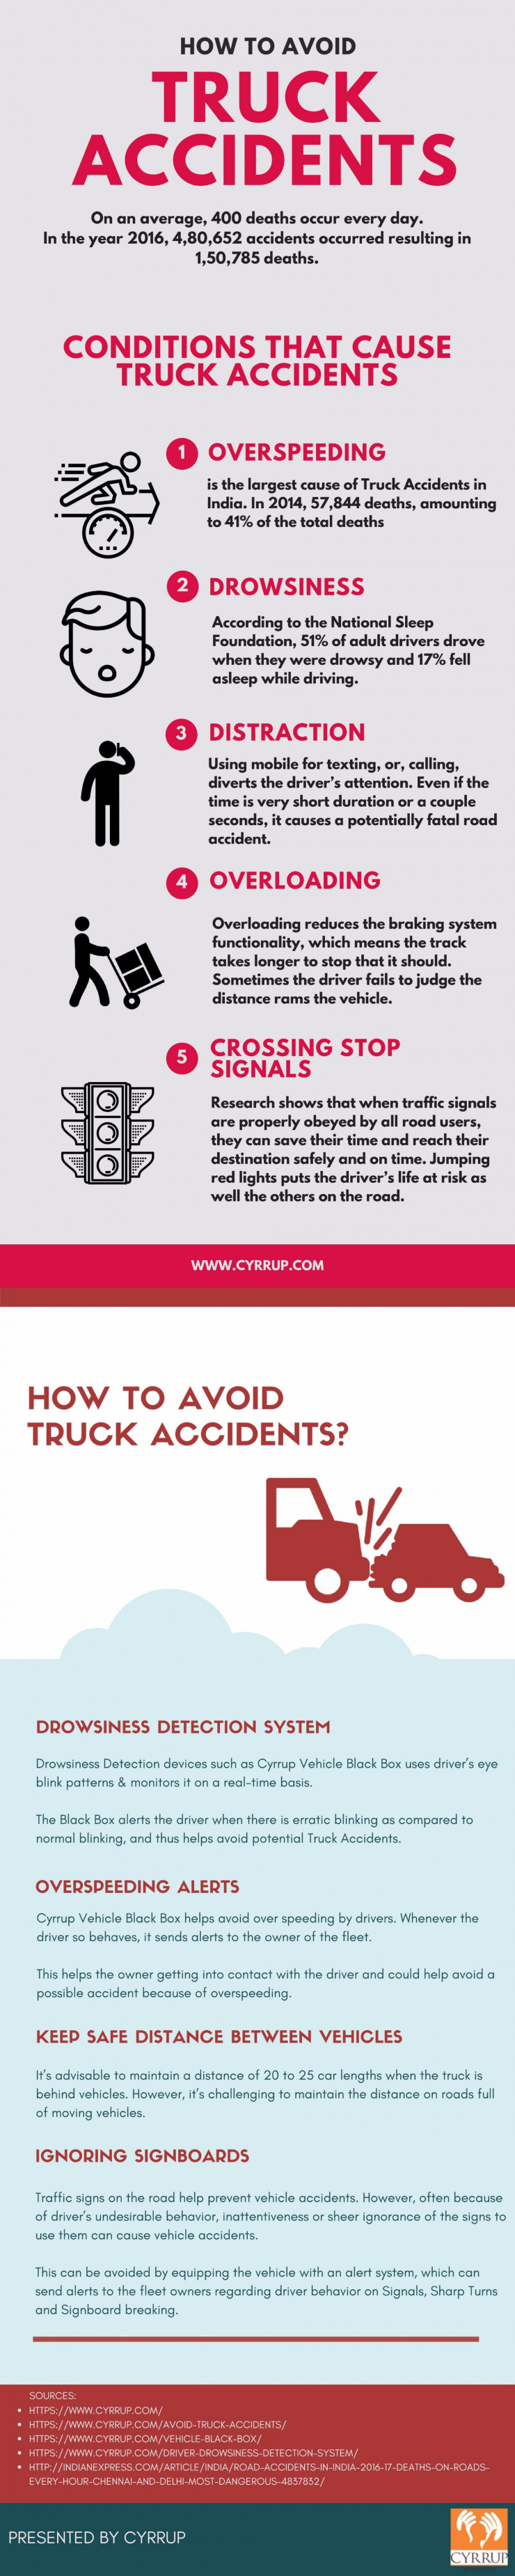 How to Avoid Truck Accidents?